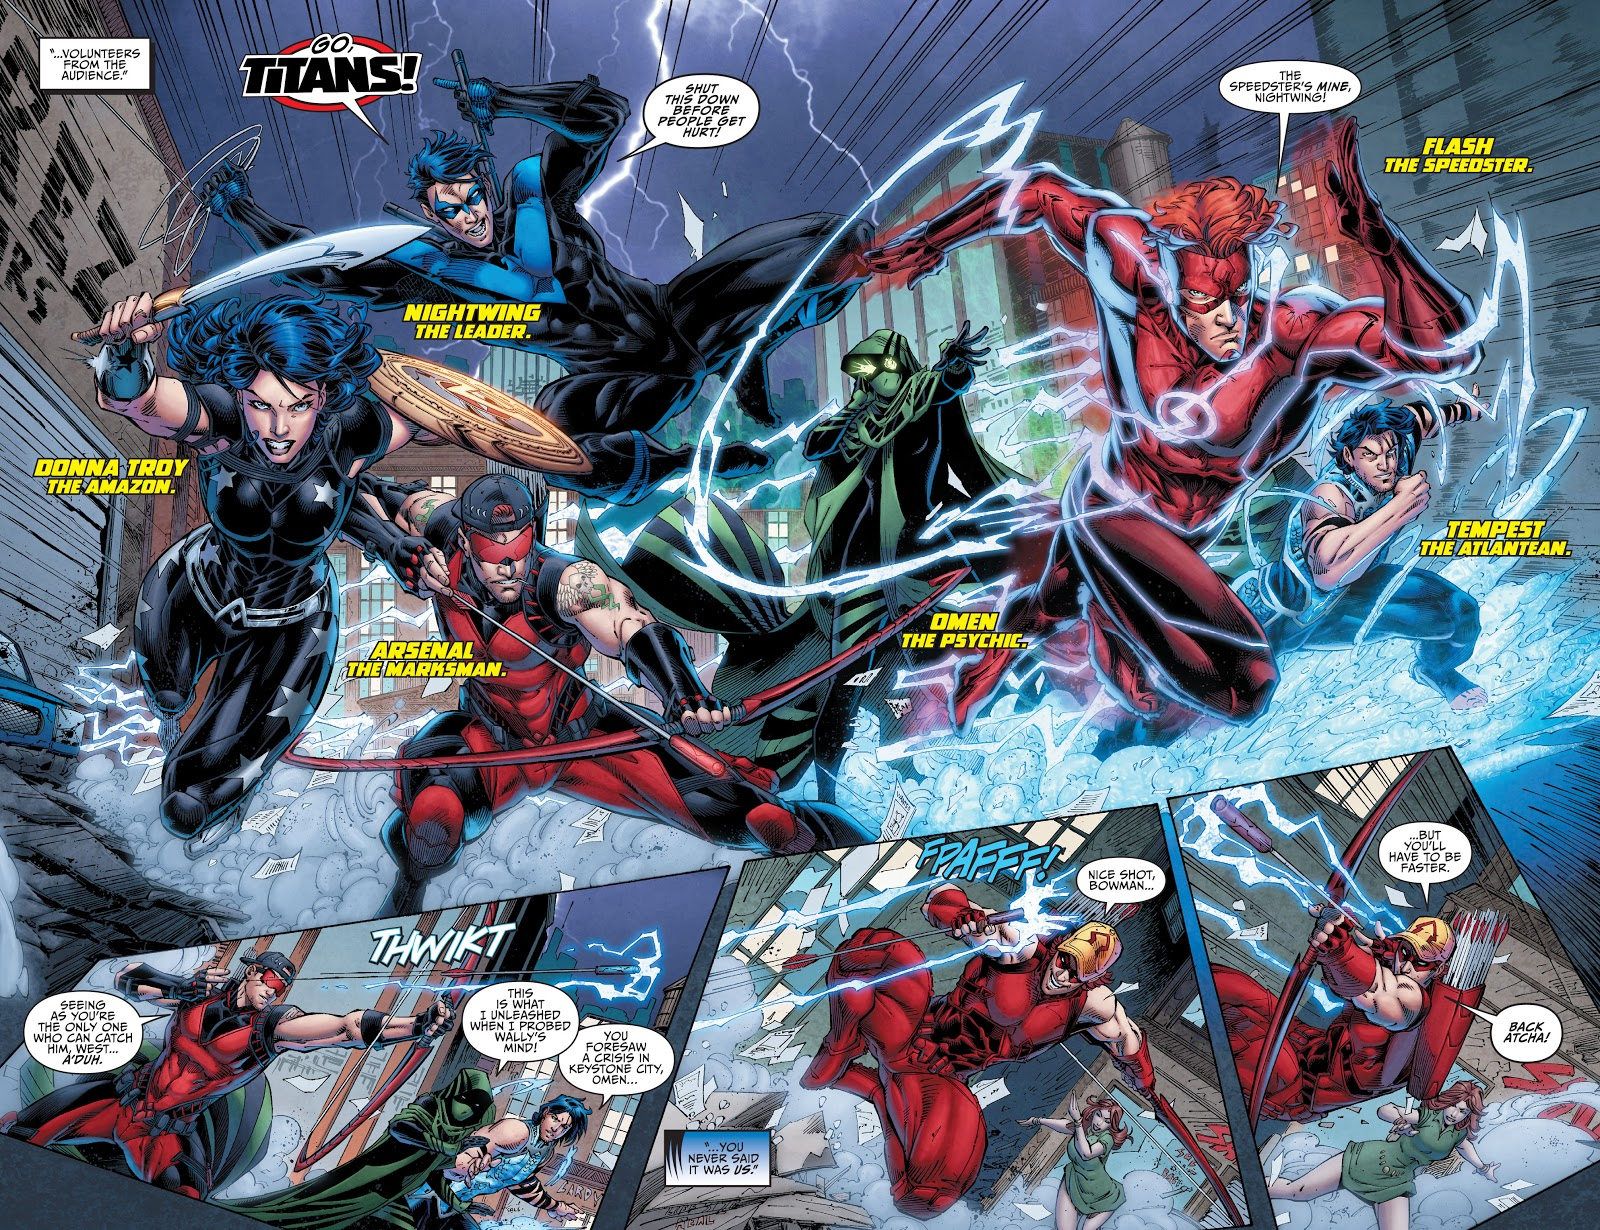 Titans The Return of Wally West review